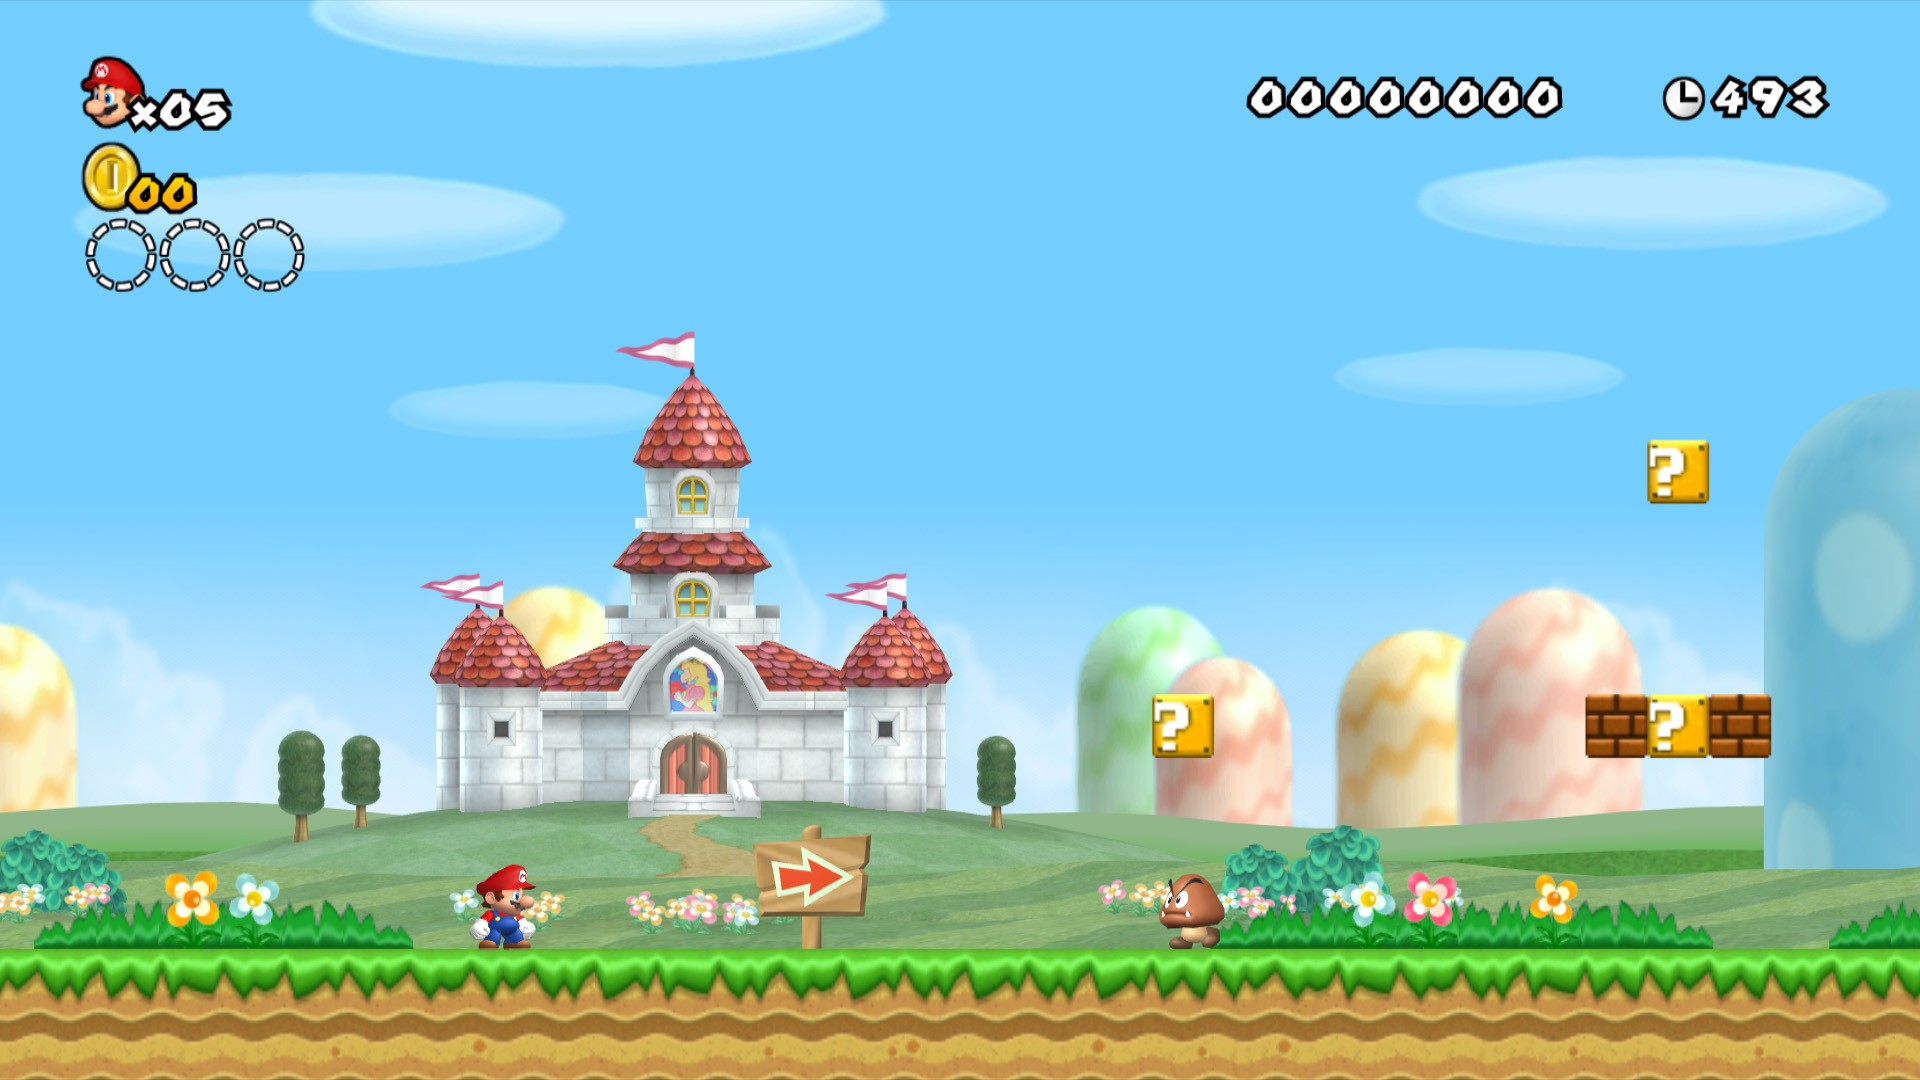 Home supermario games supermario wallpapers - 14 New Super Mario Bros Wii Hd Wallpapers Hintergr Nde Wallpaper Abyss